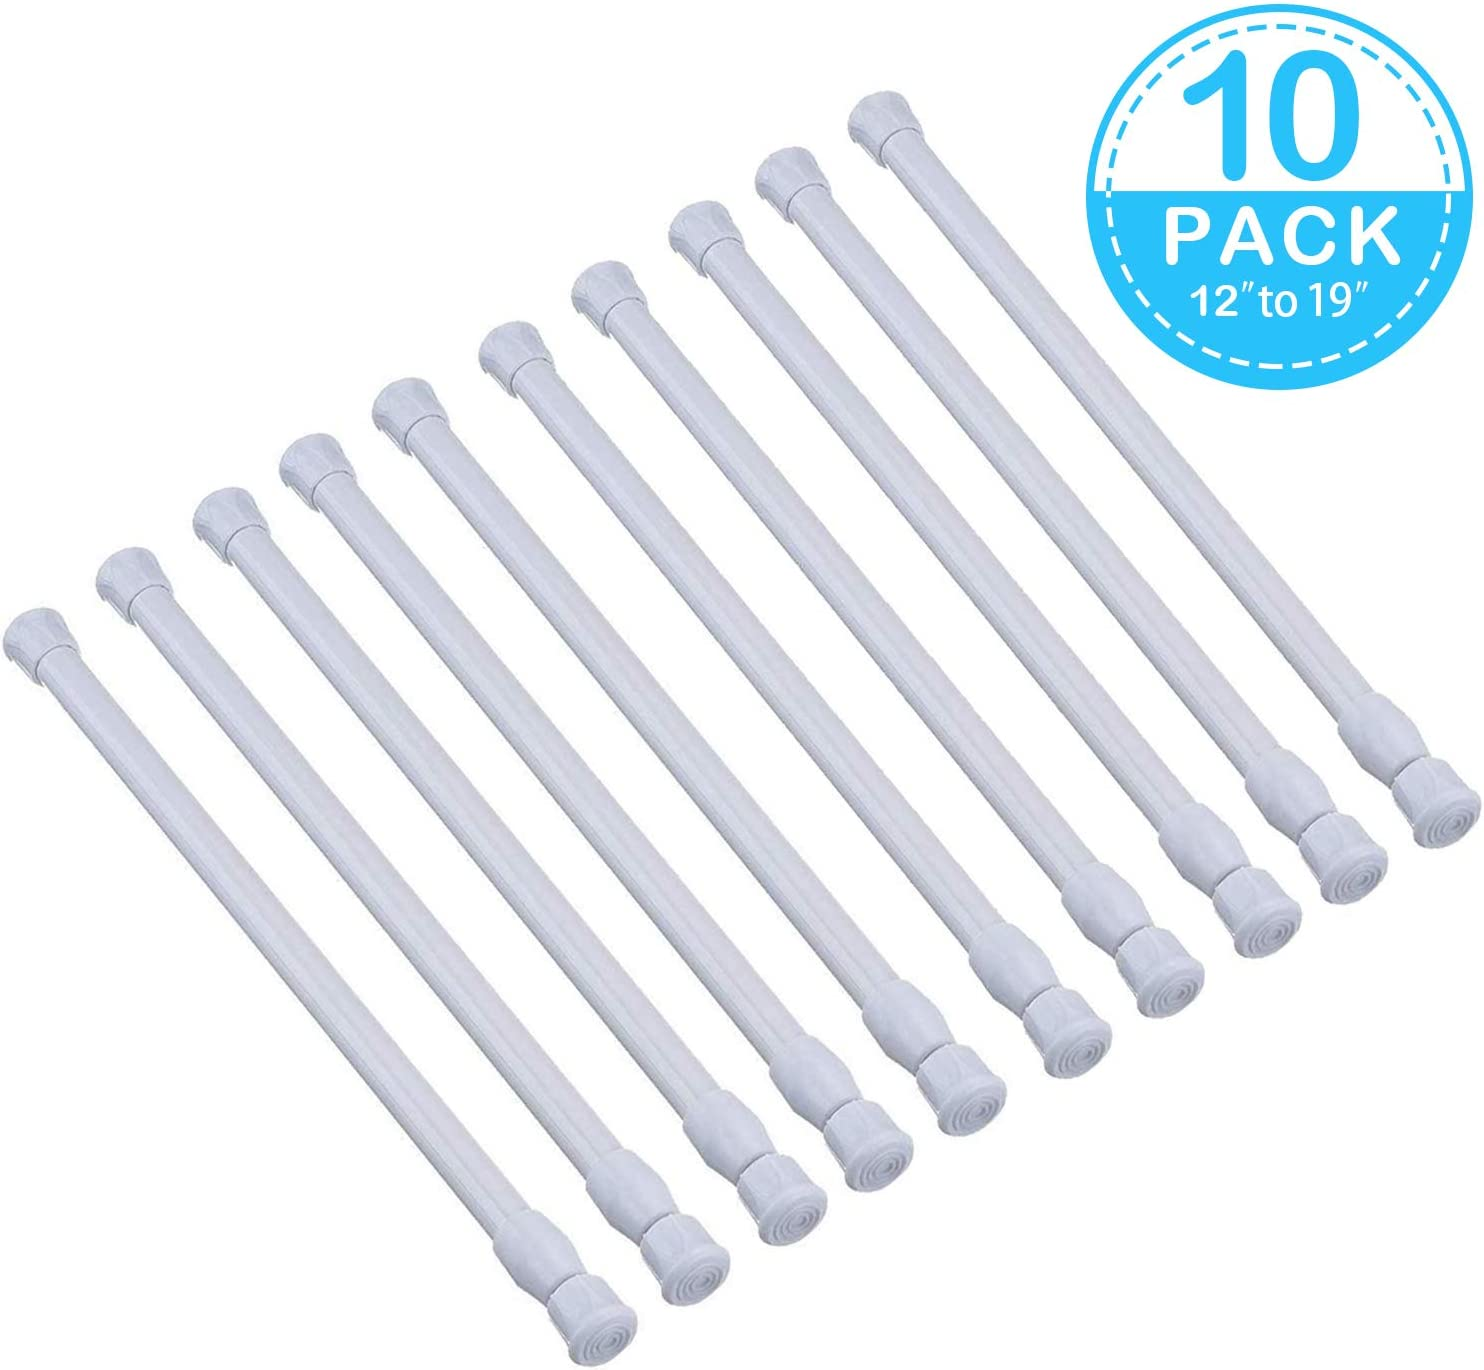 GOODUSCN 6 Pack Tension Rods Extendable Width 28 to 48 Adjustable ...